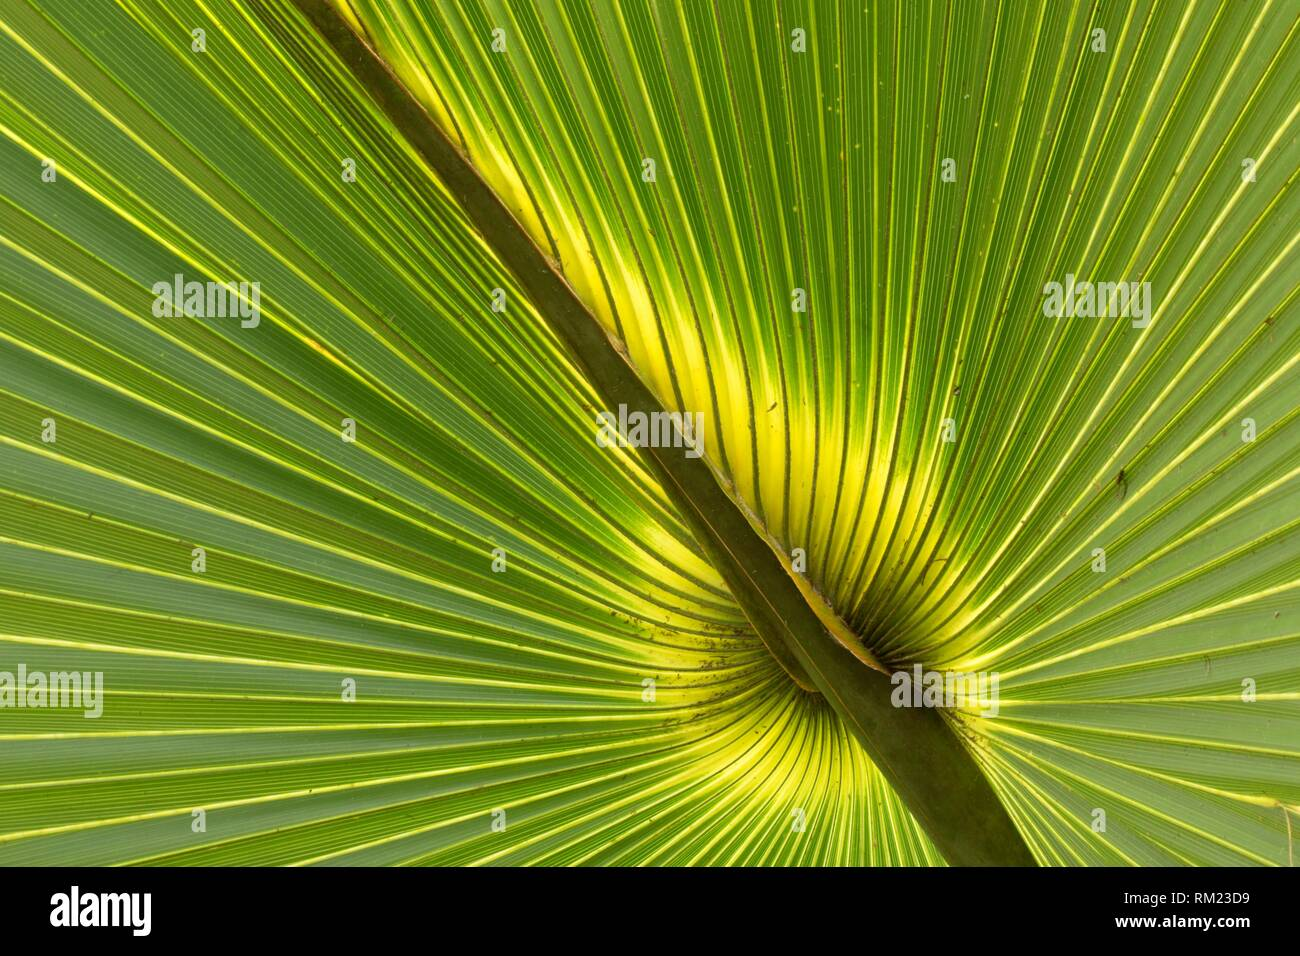 Kohl Palme Wedel, Enchanted Forest Sanctuary, Florida. Stockbild